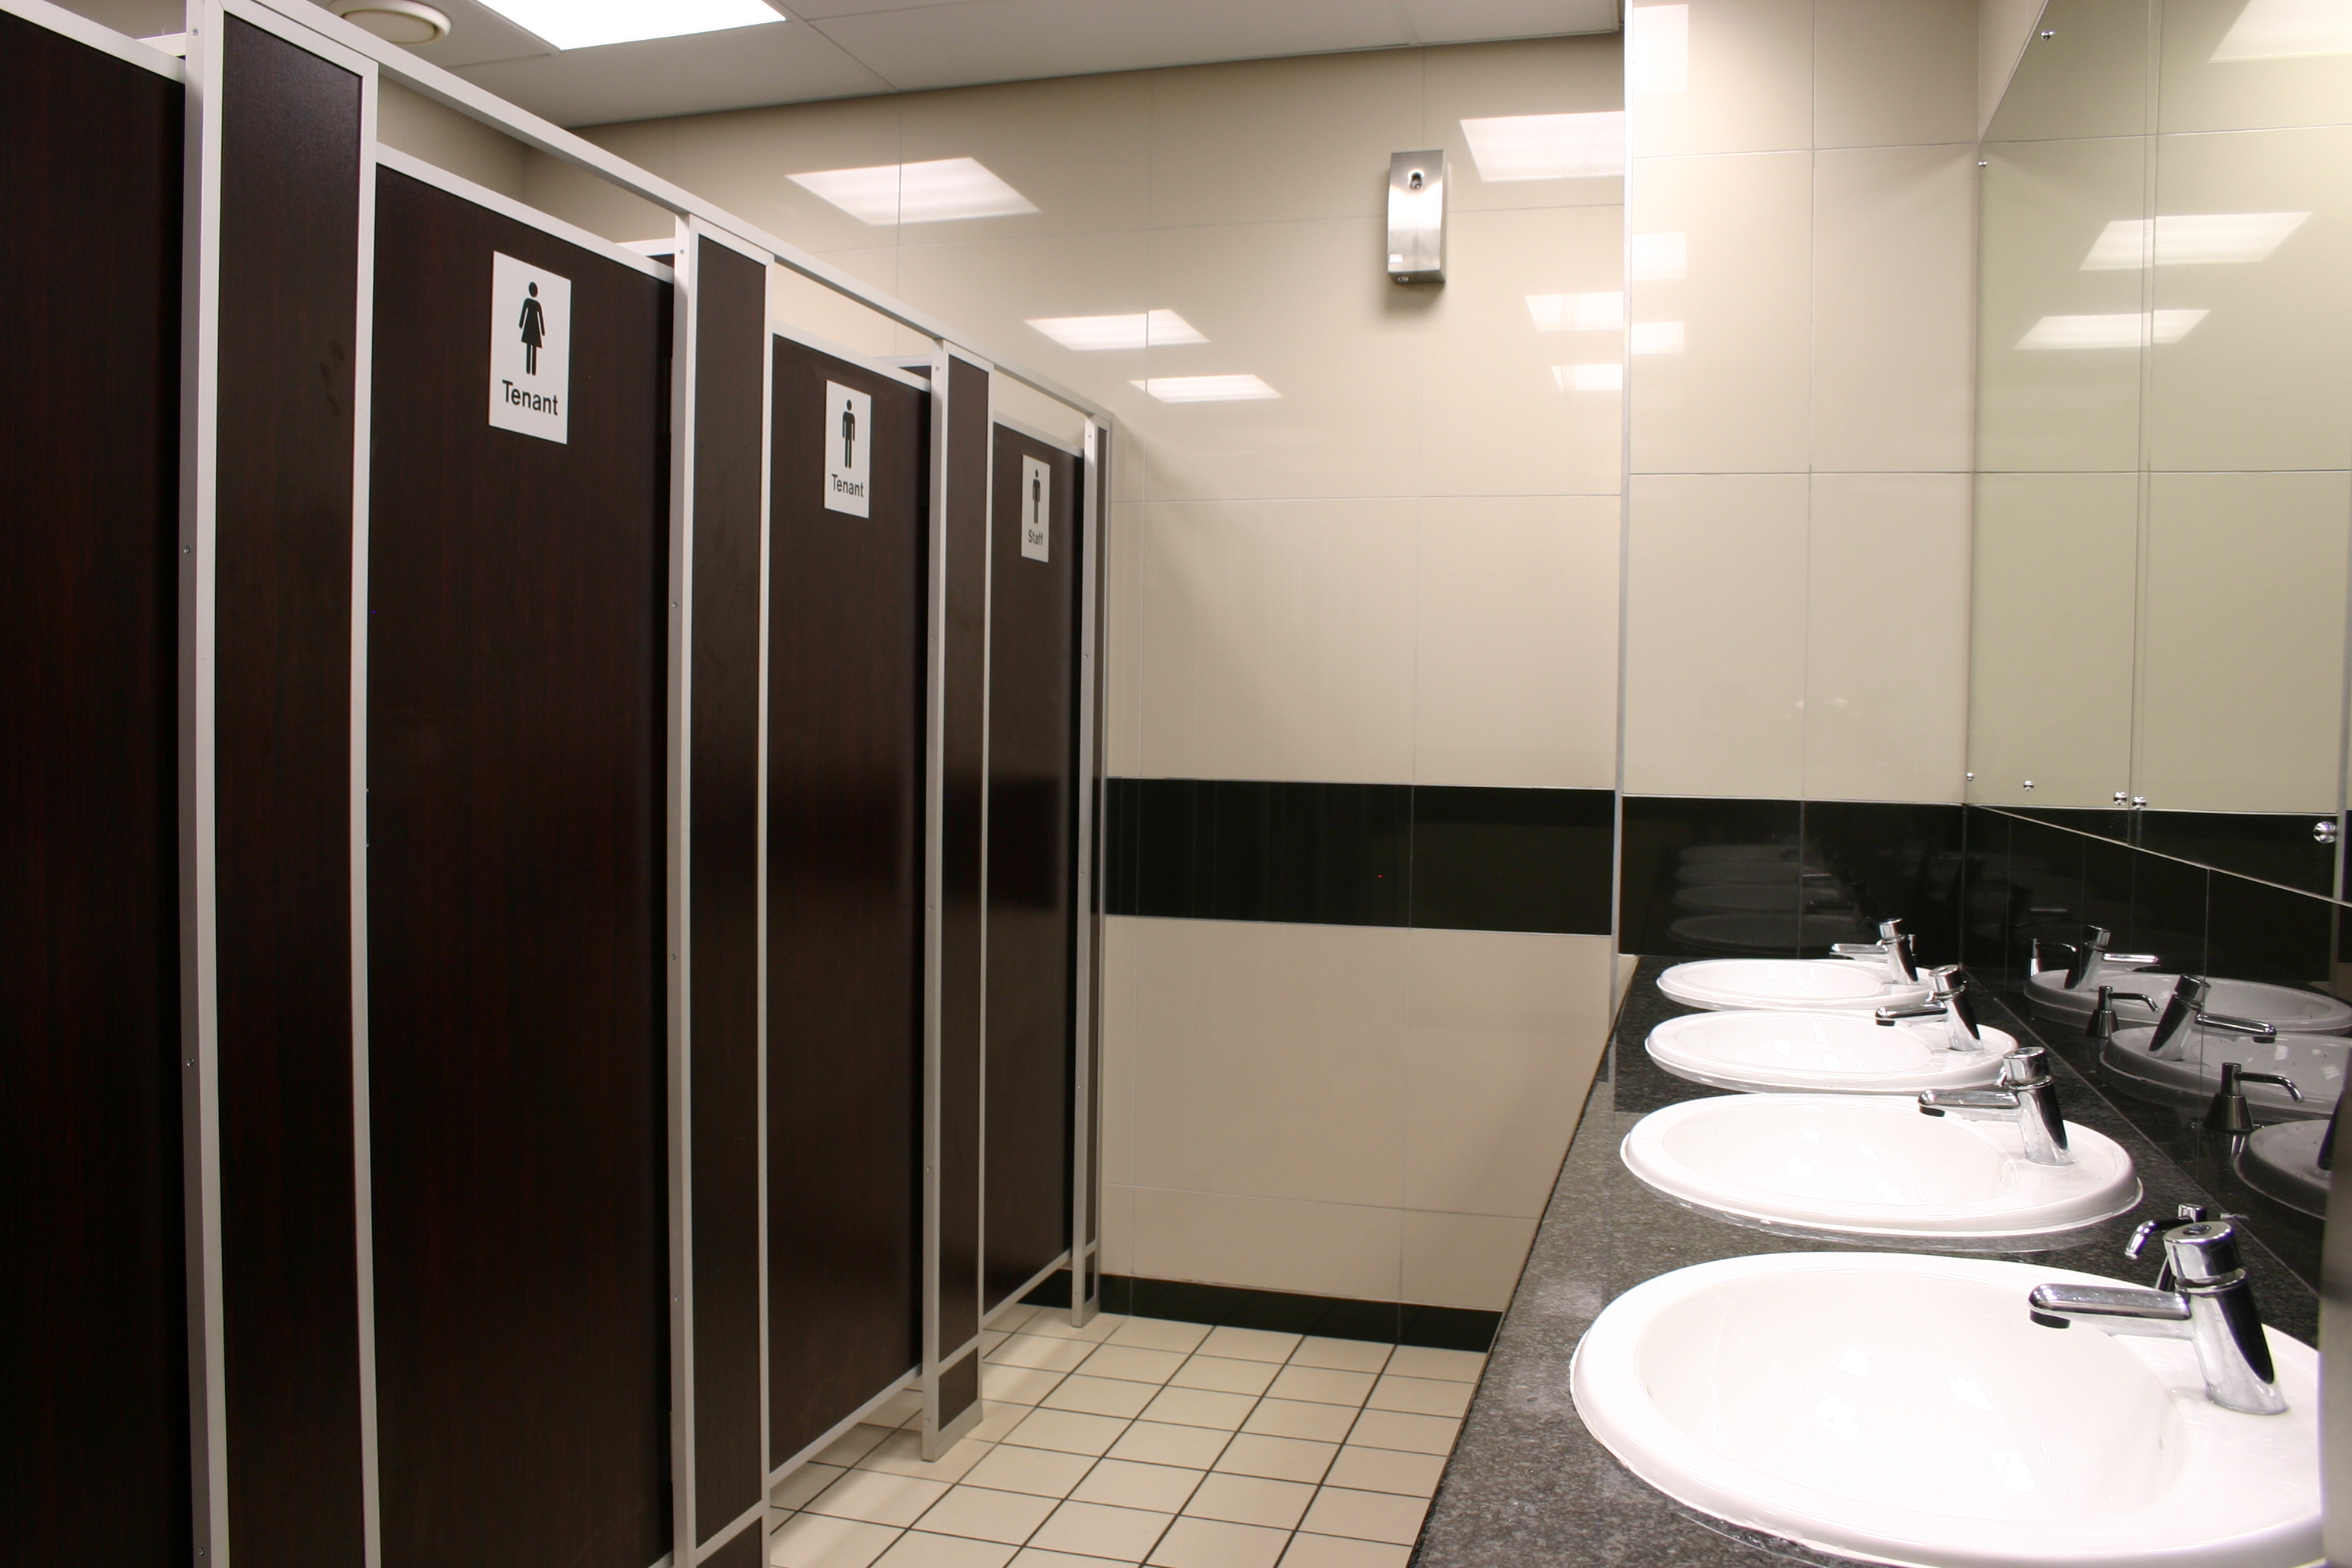 T1 framed toilet partition pelican systems - How to install bathroom partitions ...